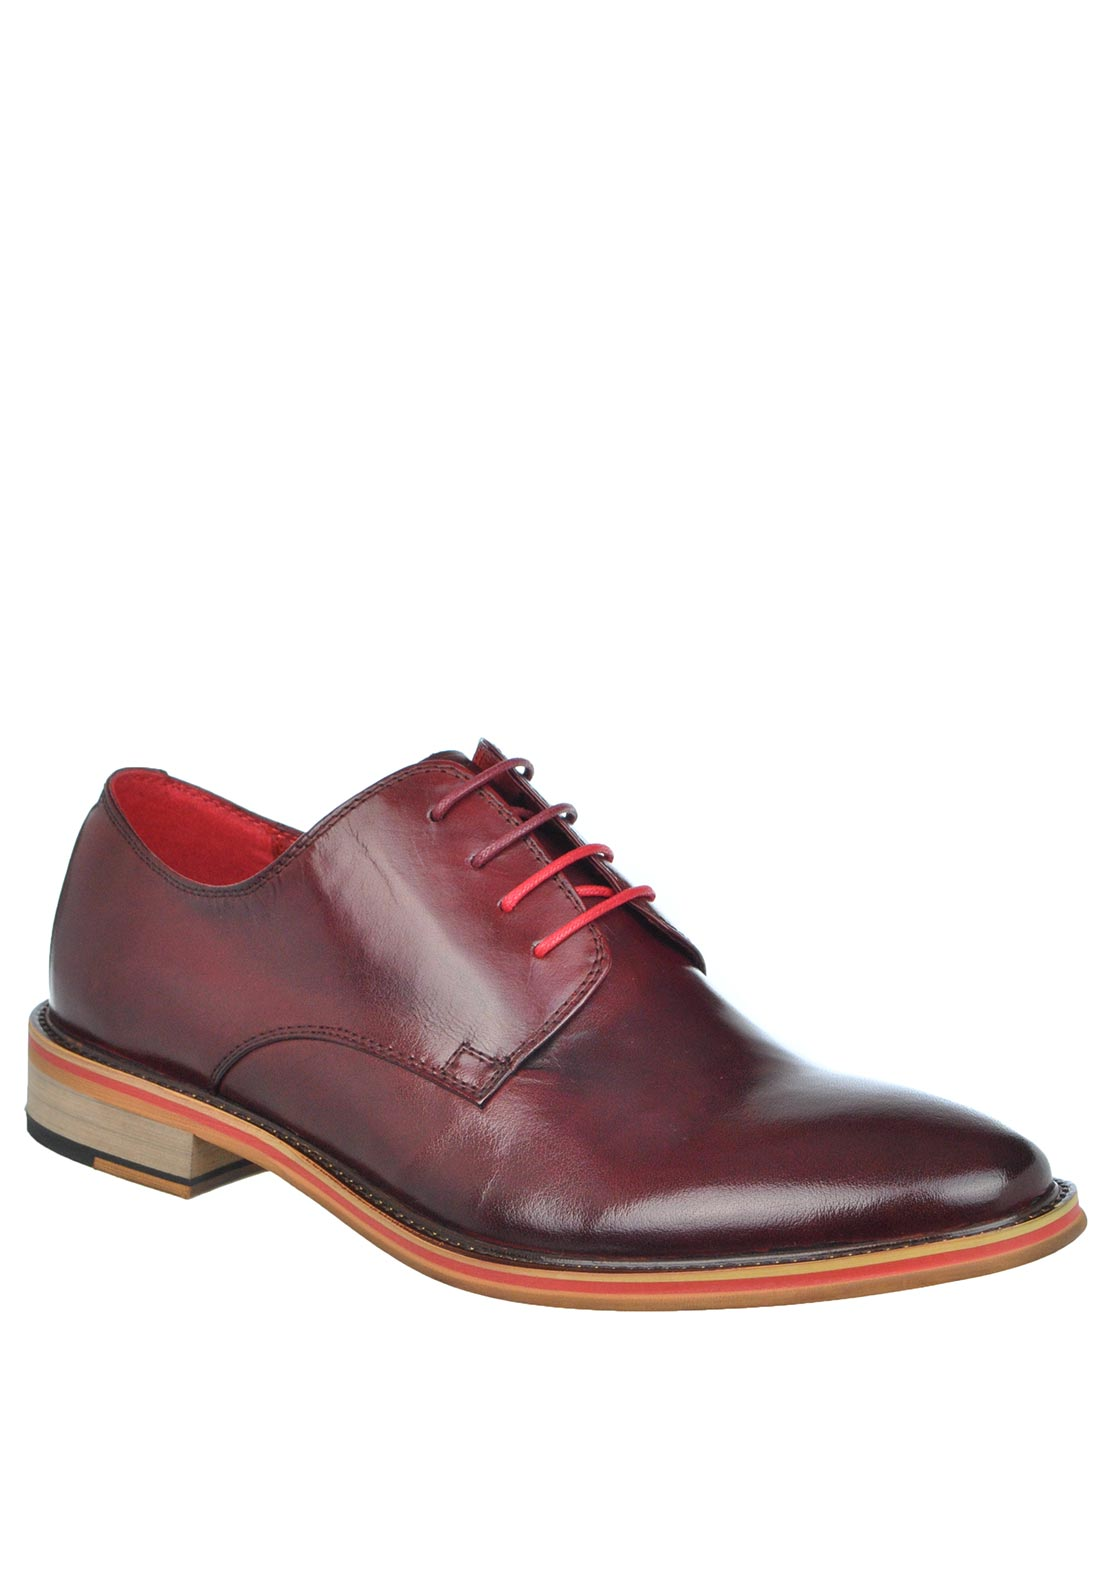 Justin Reece Alfred Lace Up Leather Shoe, Wine